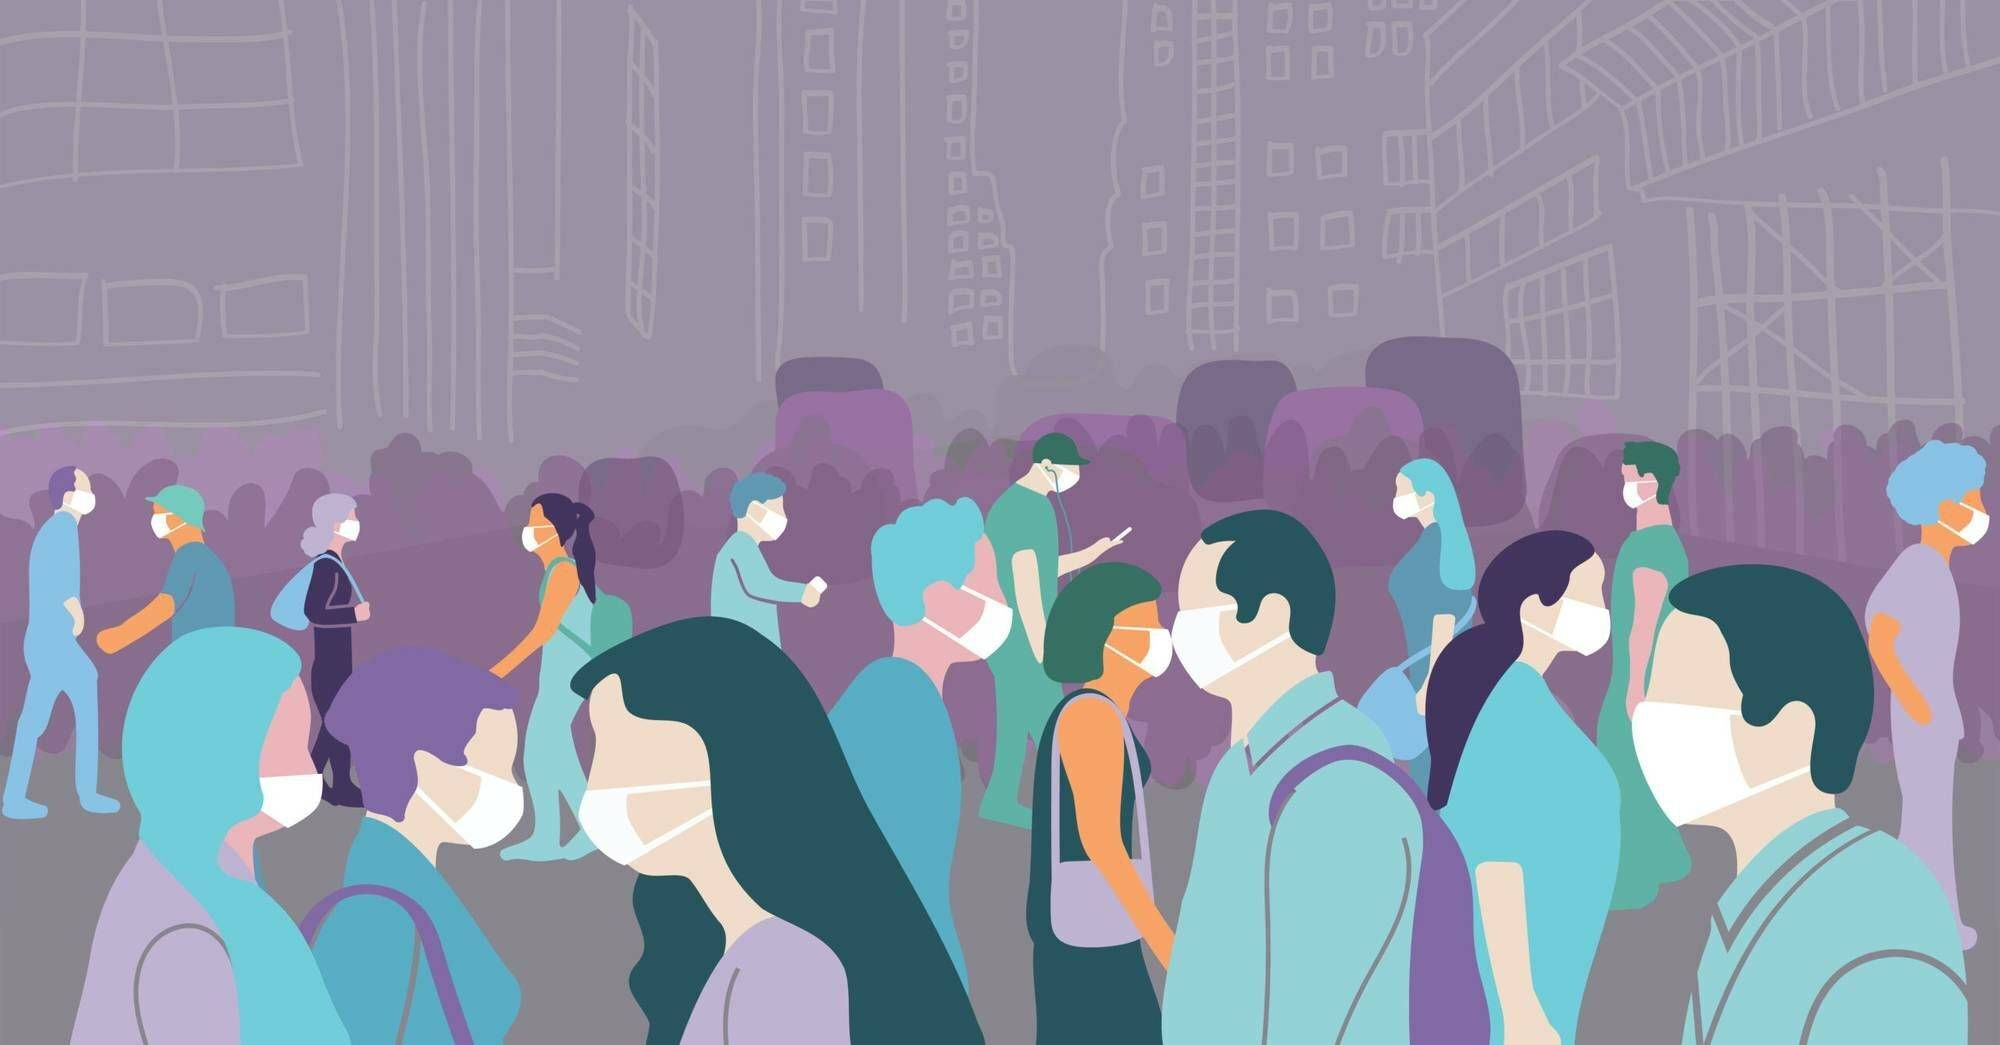 Illustration of crowd walking in a large city during covid-19 pandemic wearing face mask to protect themselves. Rewire, COVID anxiety